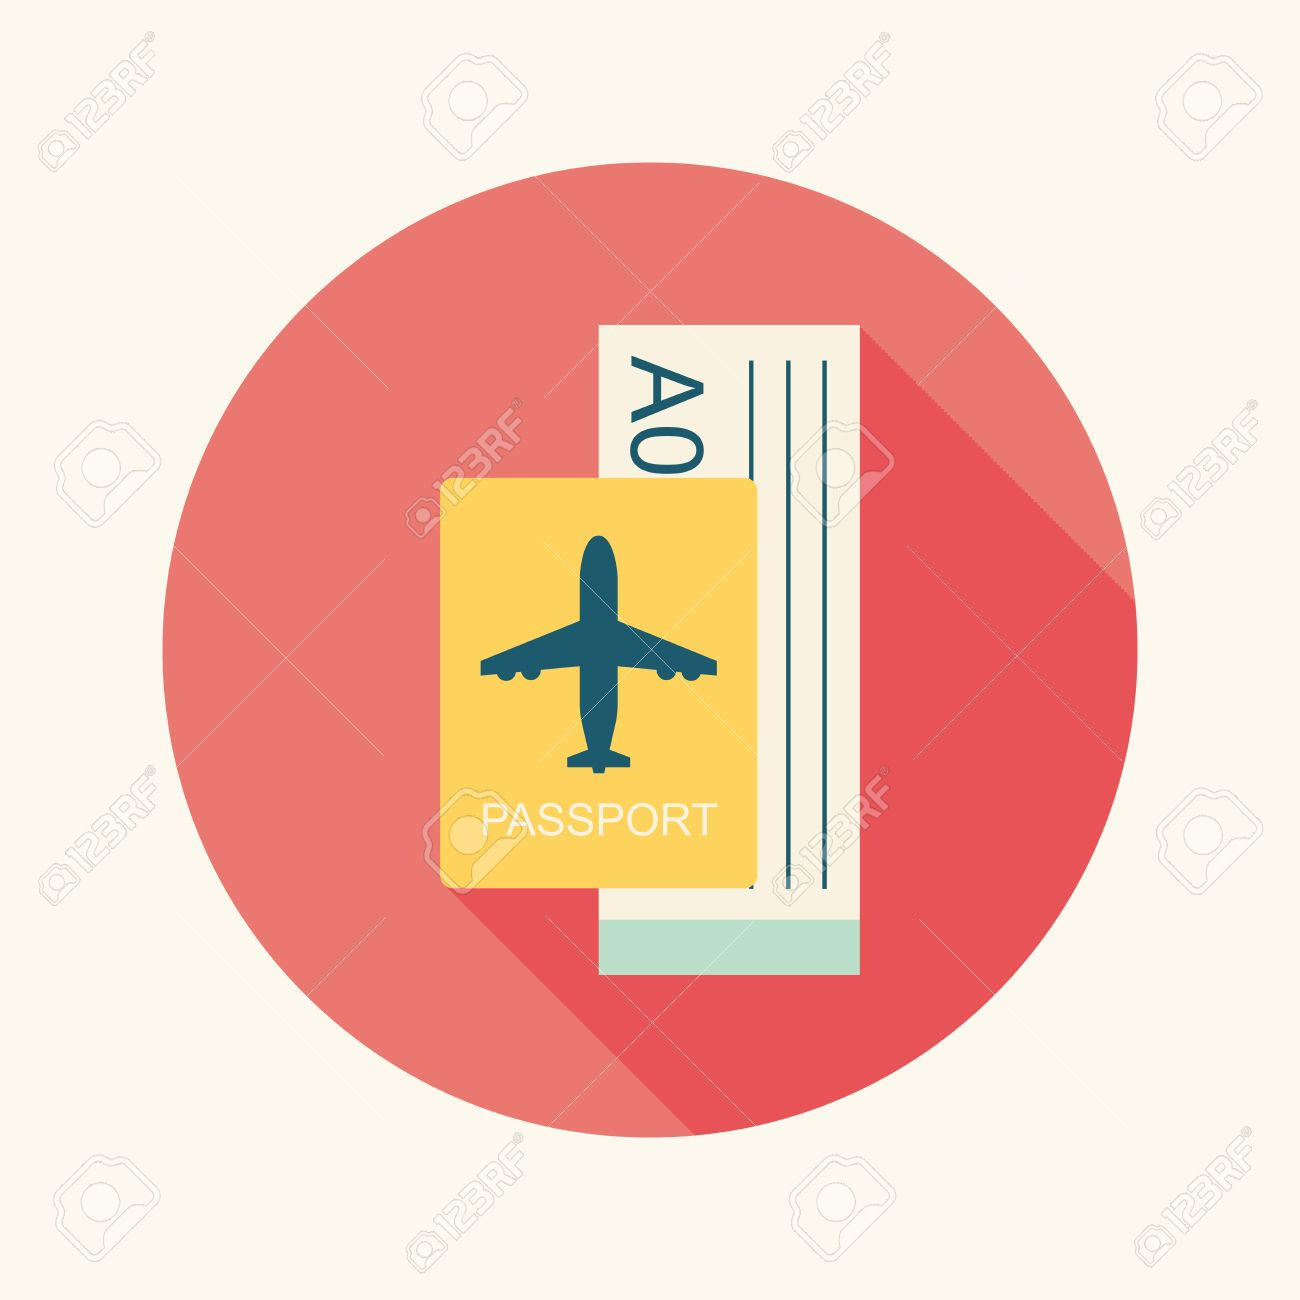 Air Ticket Flat Icon With Long Shadow Stock Vector